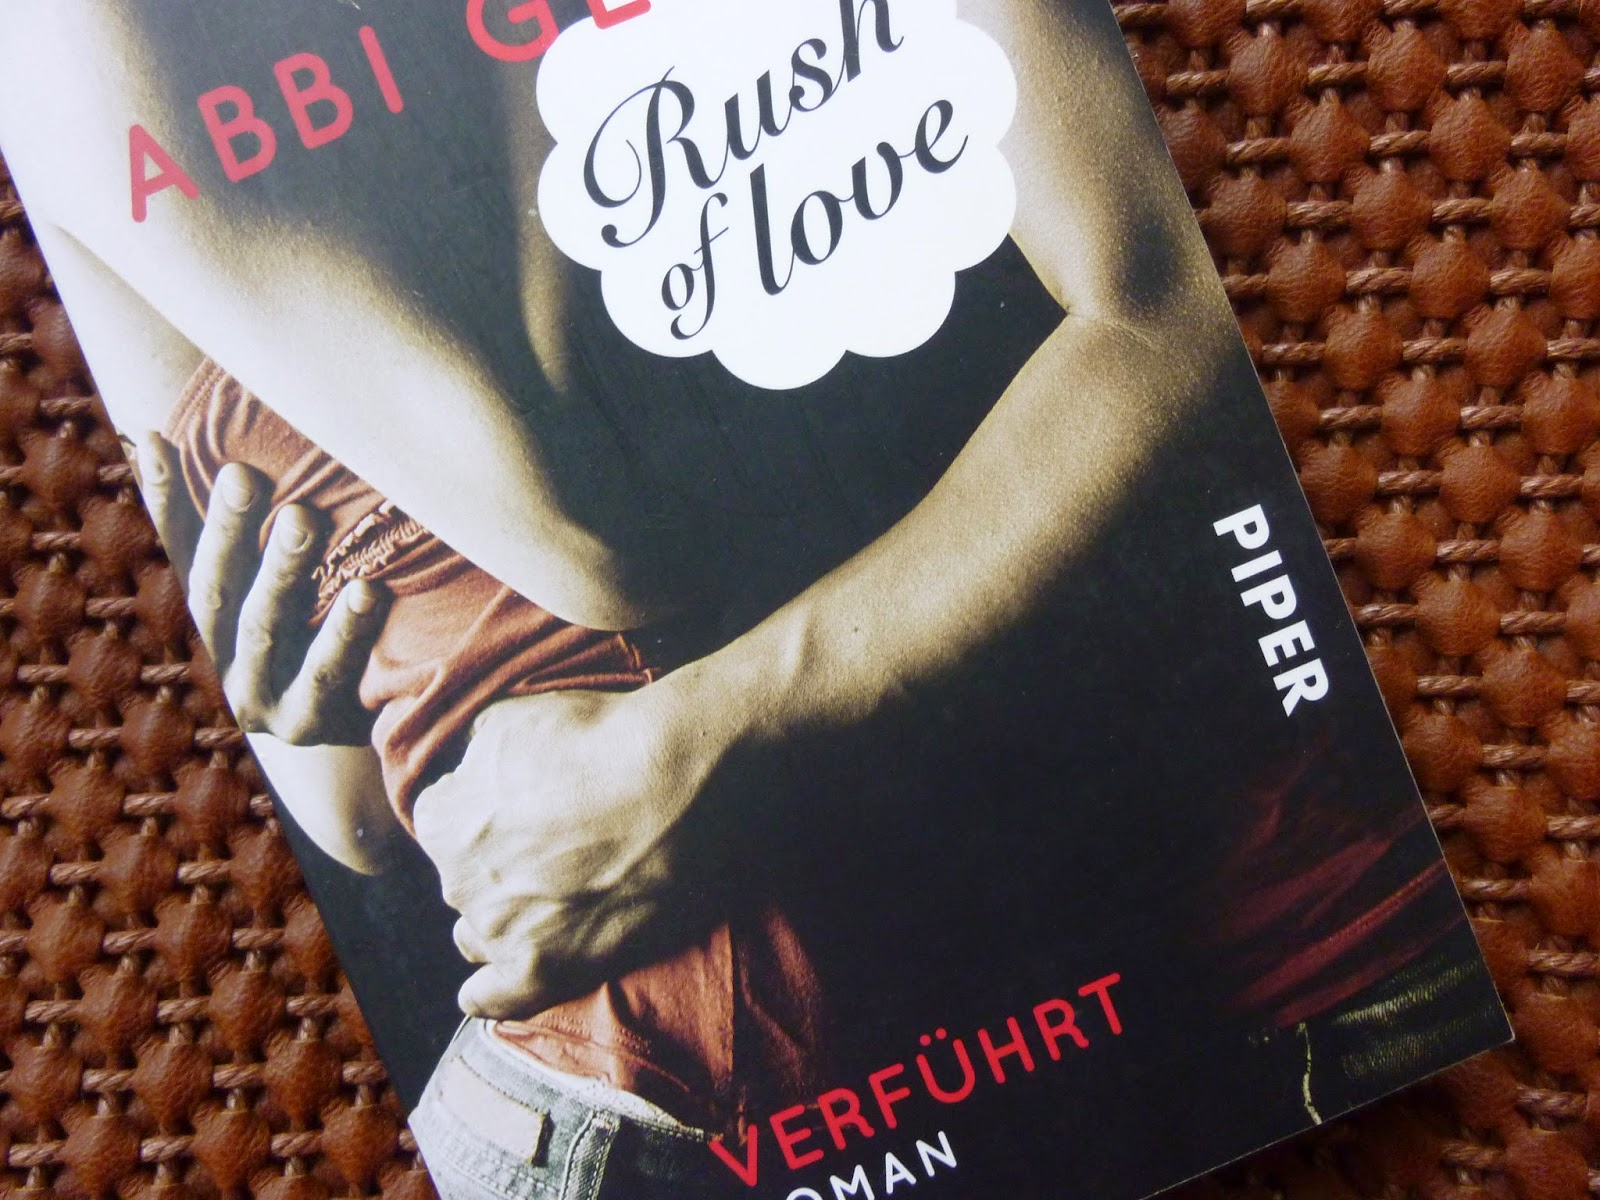 Rush of Love Verführt - Rezension - Buch Rush of Love von Abbi Glines - Pandastic Books